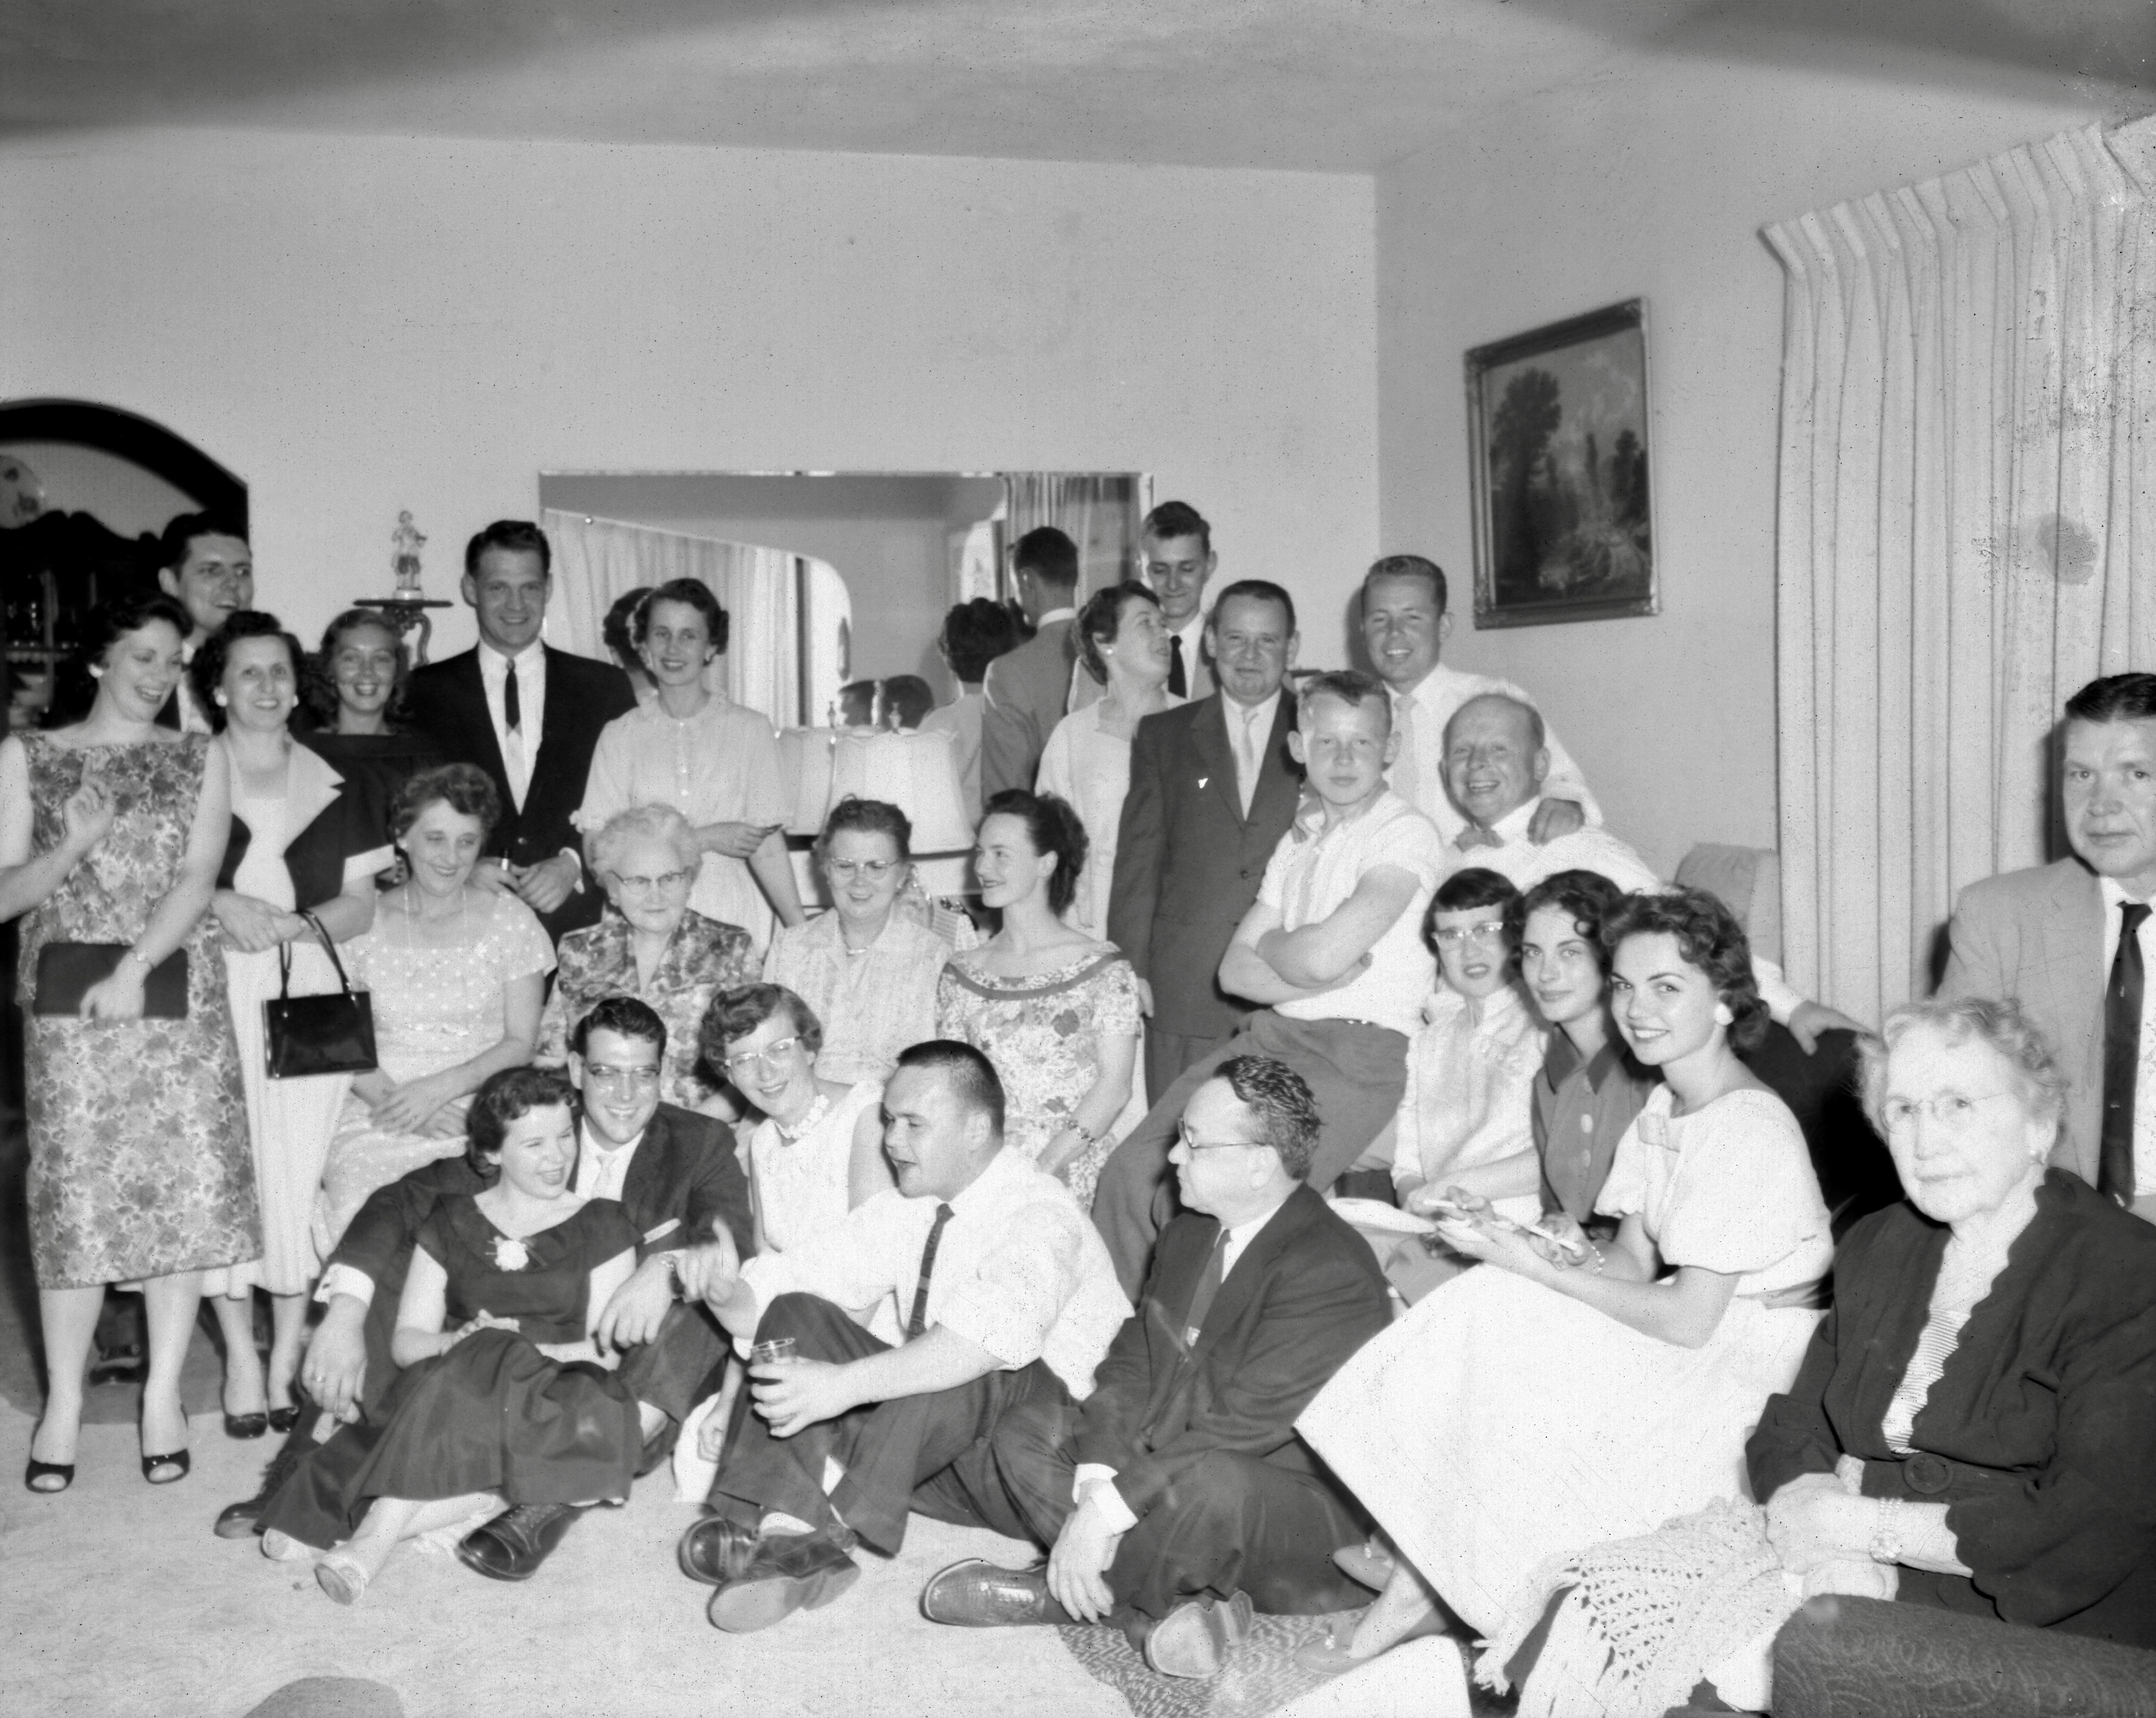 Engagement party for David D. Hanneman and Mary K. Mulqueen in June 1958